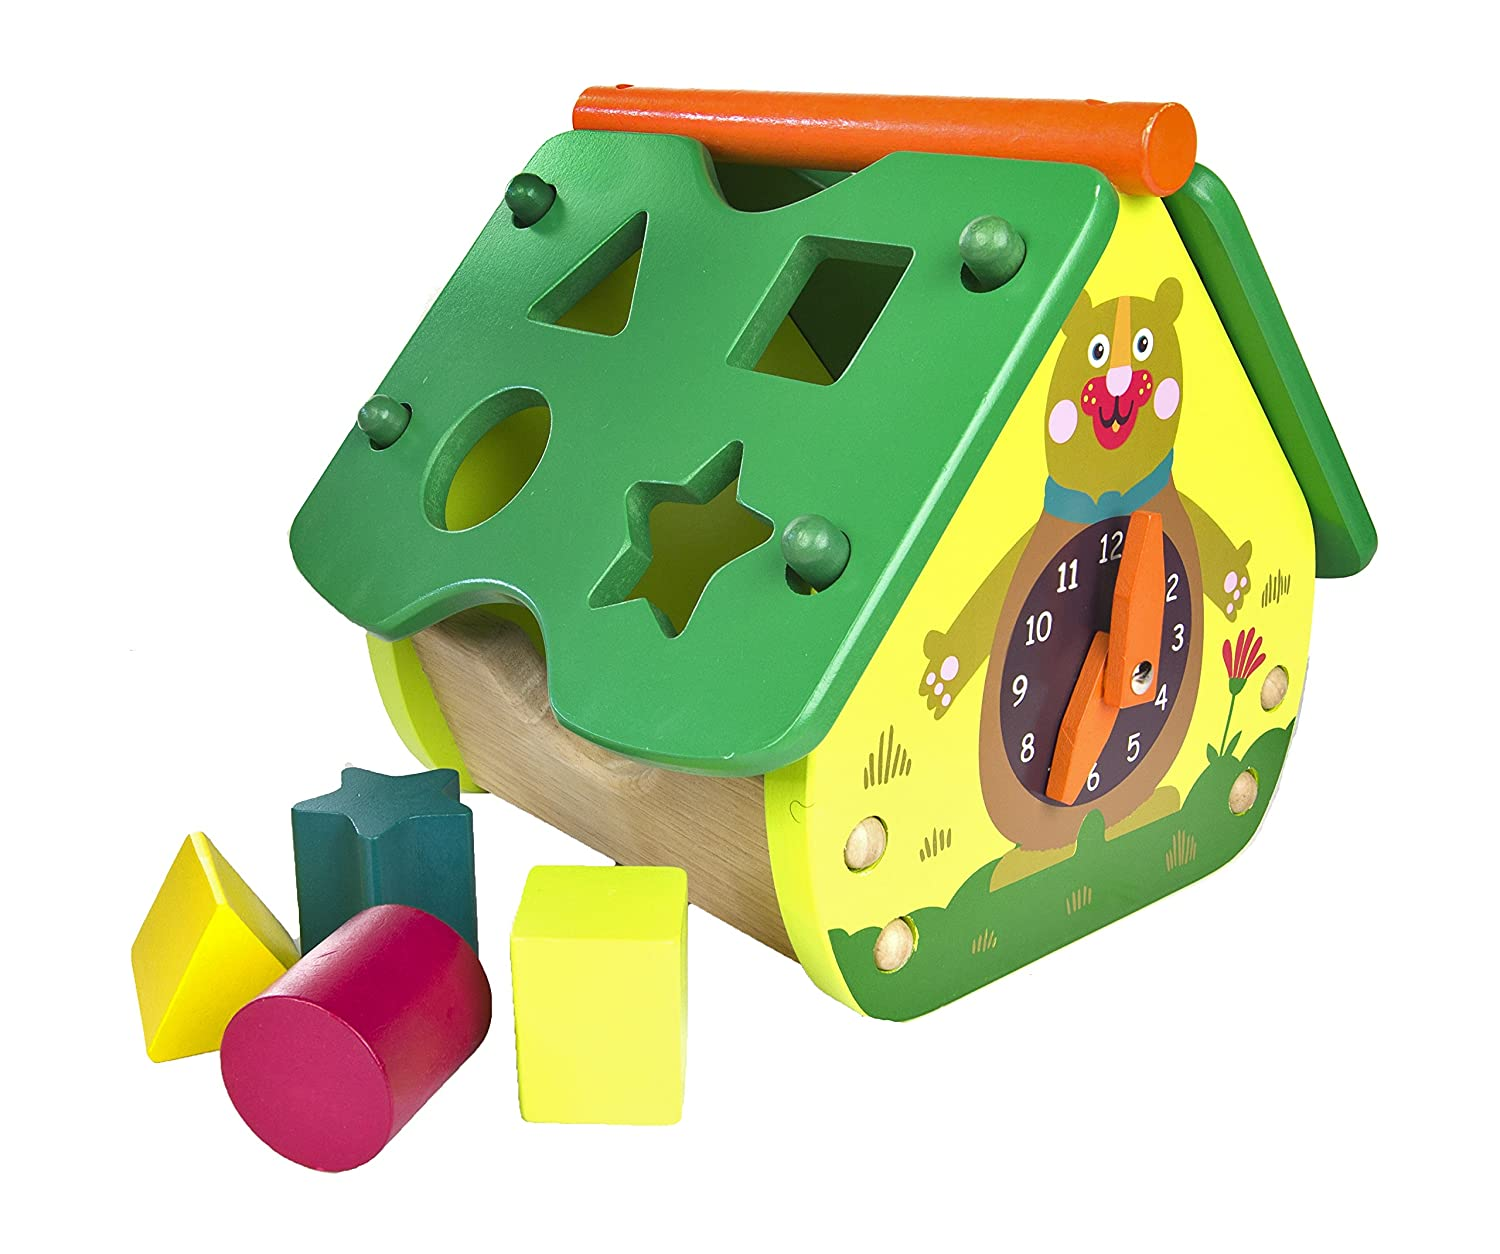 5-Piece Ages 3 and Up 00448 Encourages Imaginative and Mental Development Oops My Activity House and Blocks with Chocolat Safe and Easy Clean